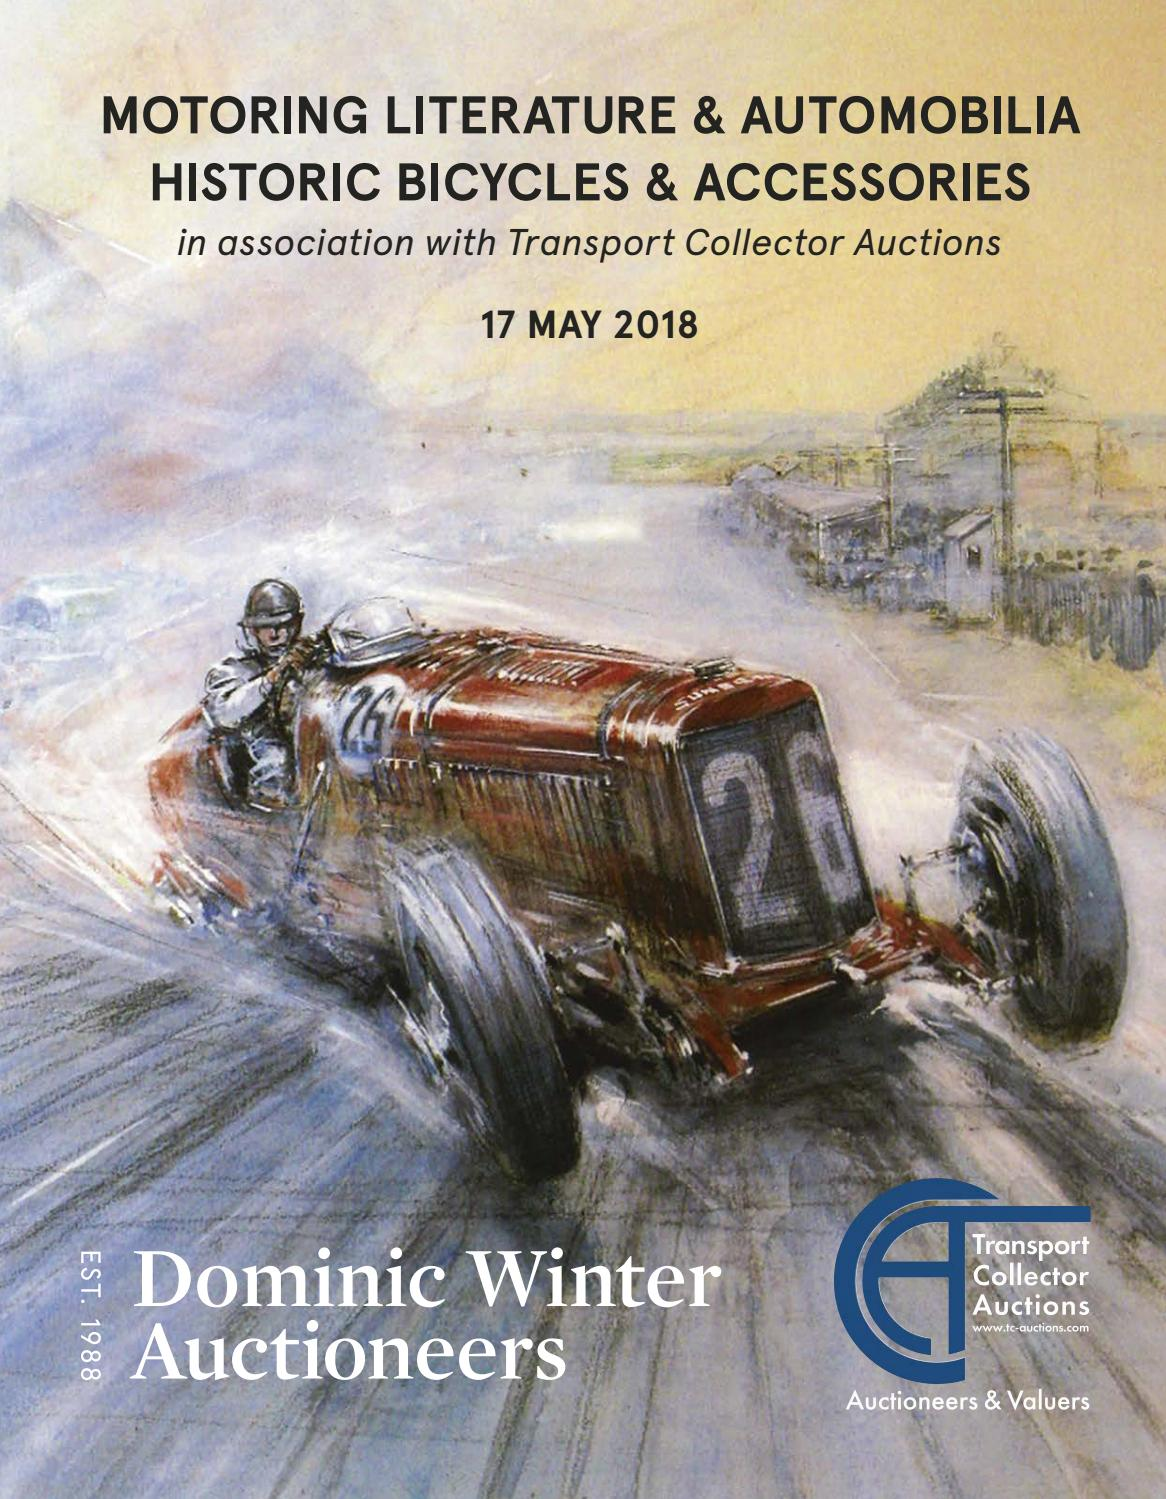 Dominic Winter Auctioneers By Jamm Design Ltd Issuu Wiring Diagrams Of 1958 Studebaker And Packard Golden Hawk